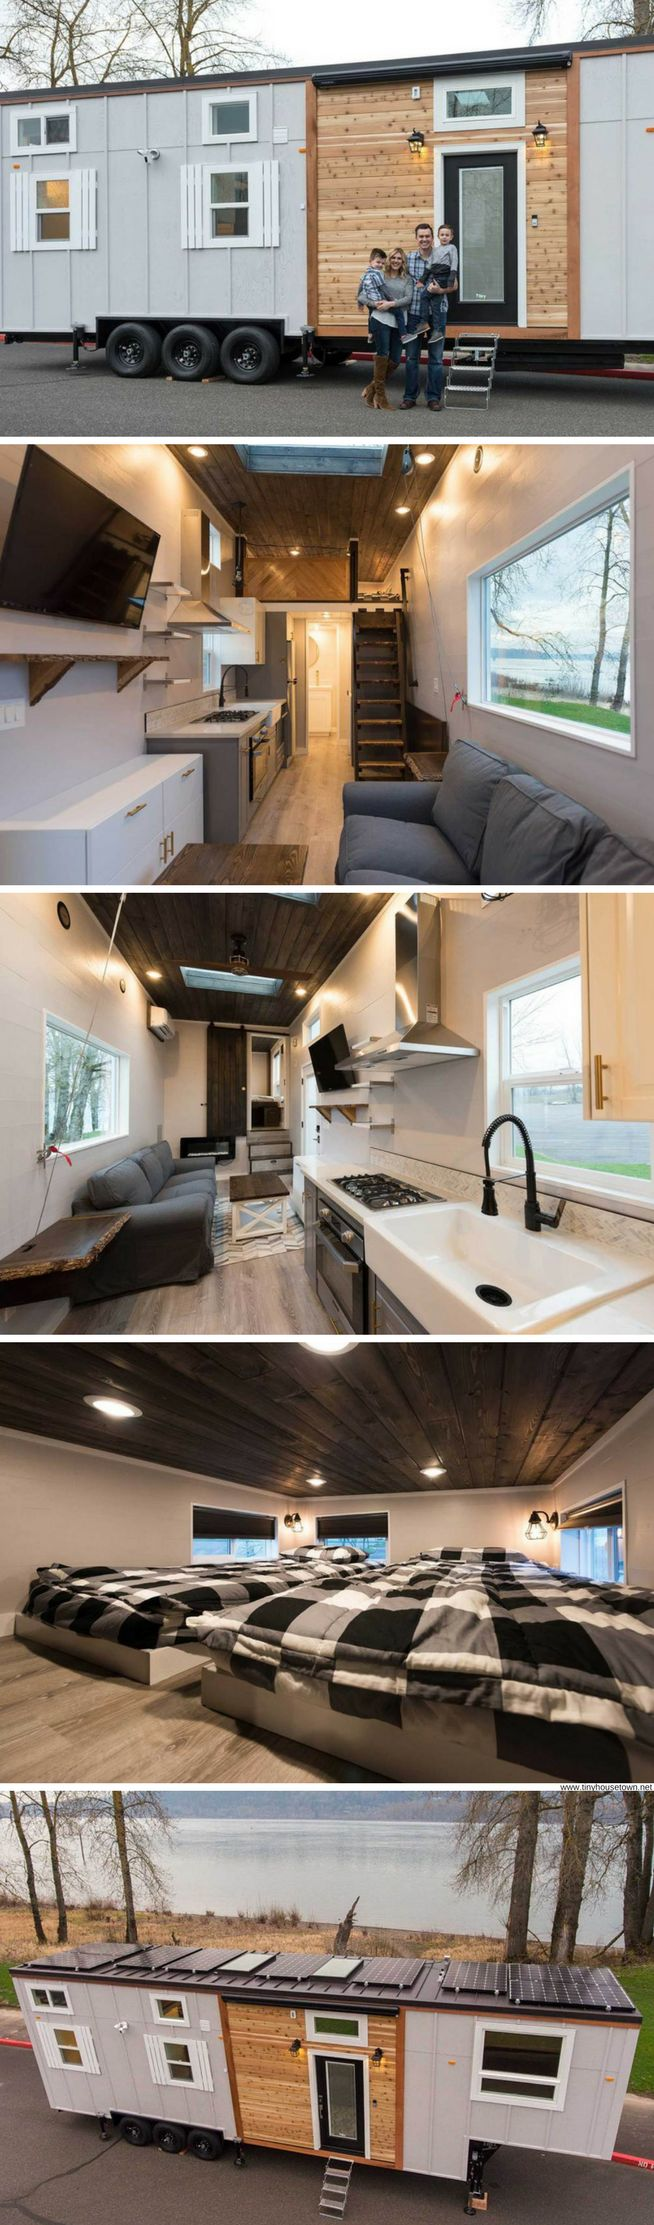 A 34' tiny home that's perfect for families!